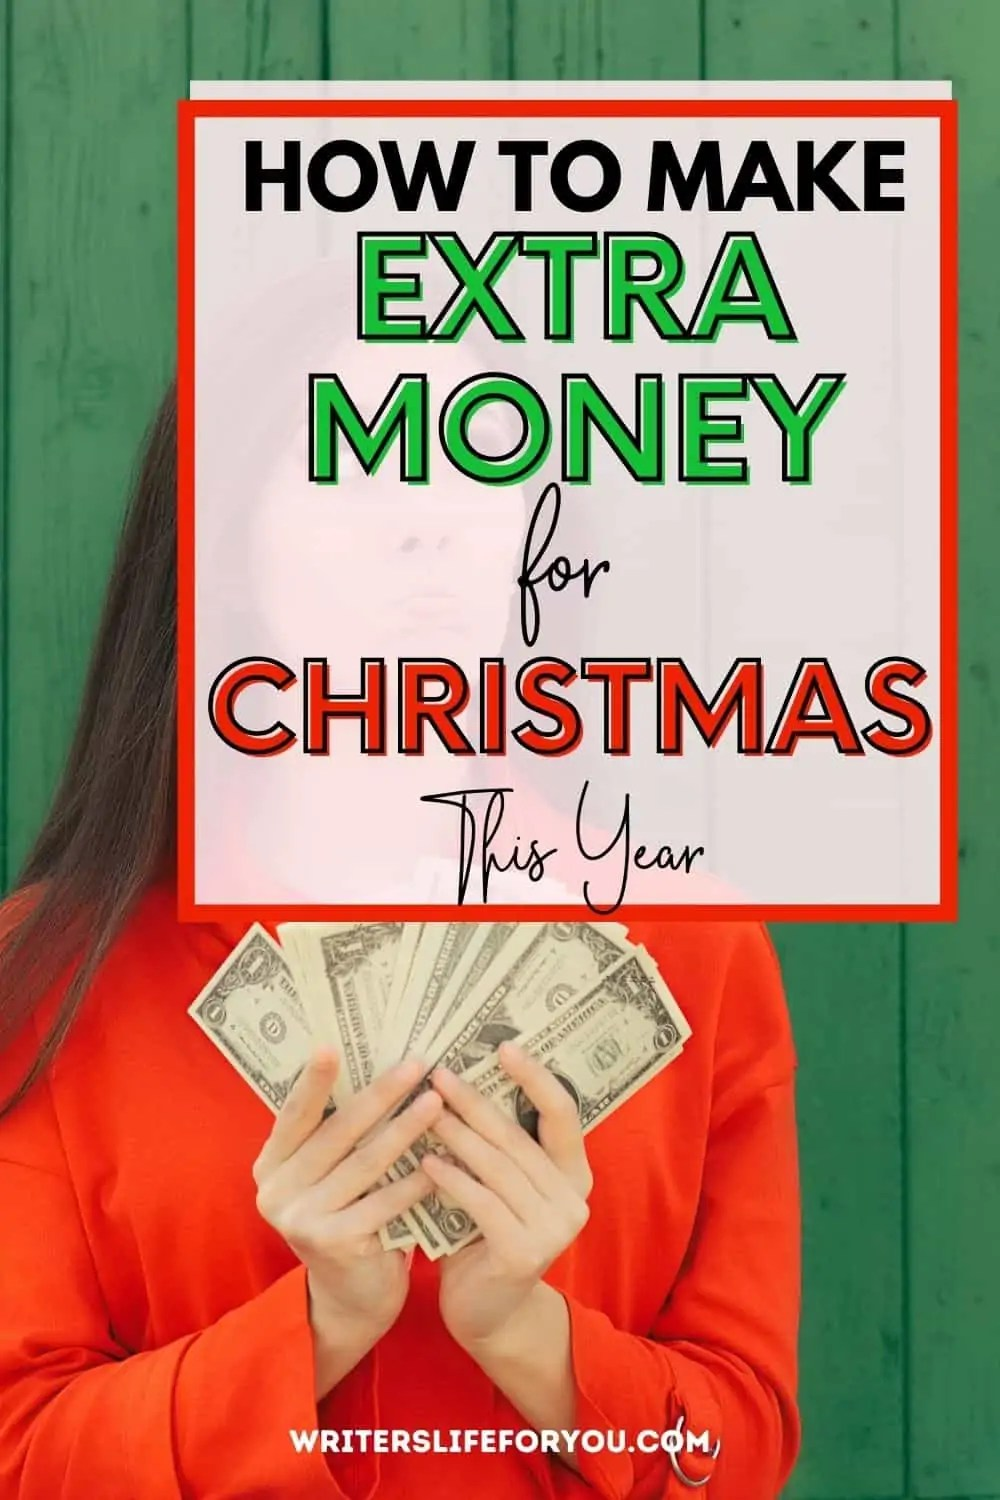 26 of the Best Ways to Make Extra Money for Christmas